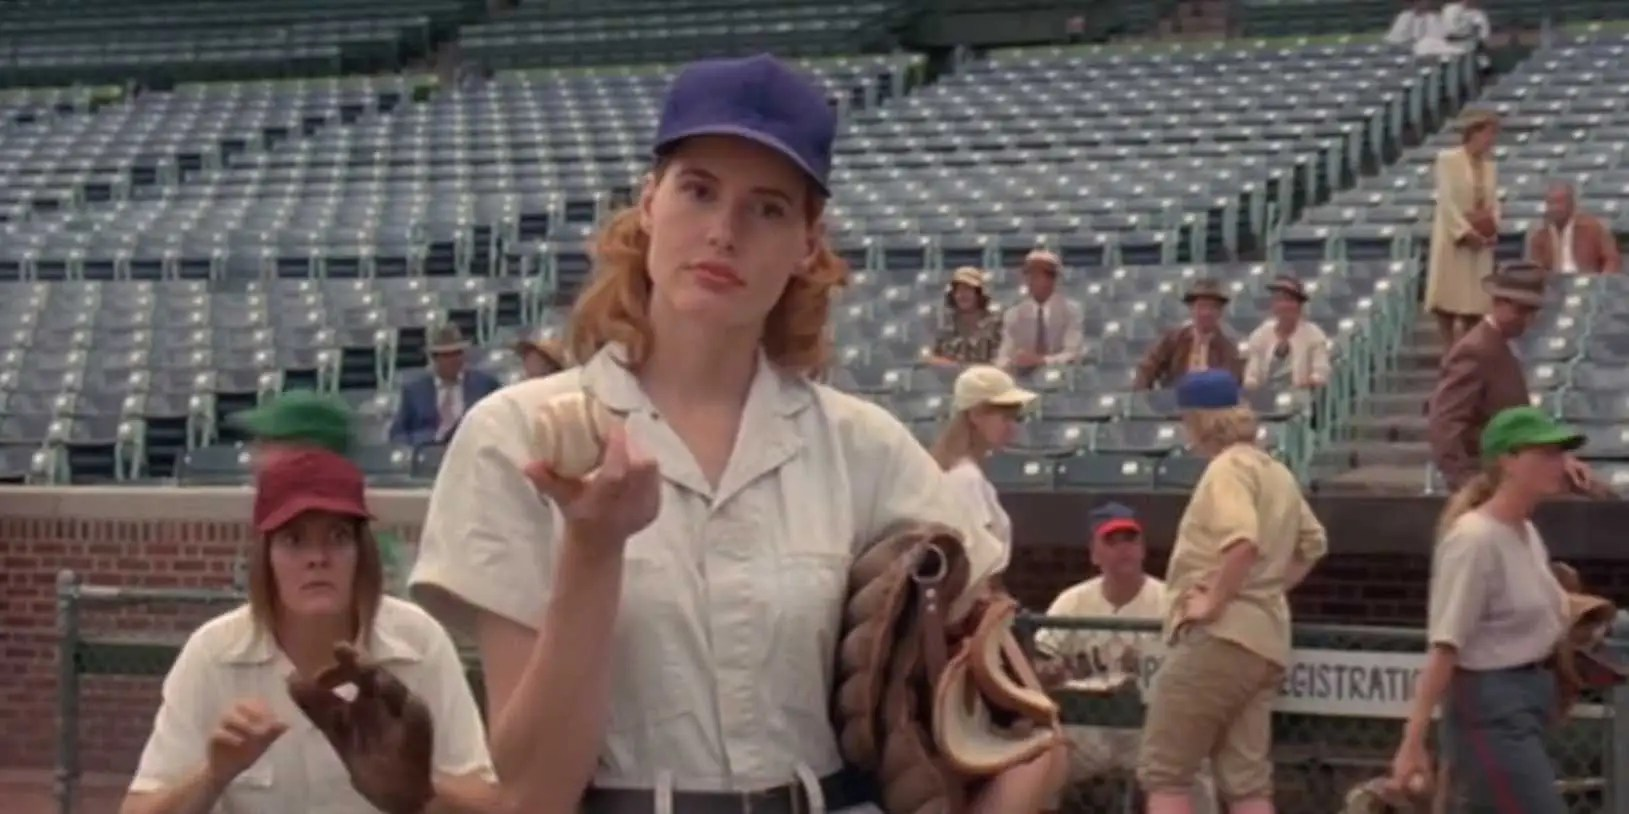 """A League Of Their Own"" (1992): During World War II while men are fighting overseas, baseball opens its doors to women. A rag-tag team (Geena Davis, Madonna, Rosie O'Donnell) fights to be taken seriously."